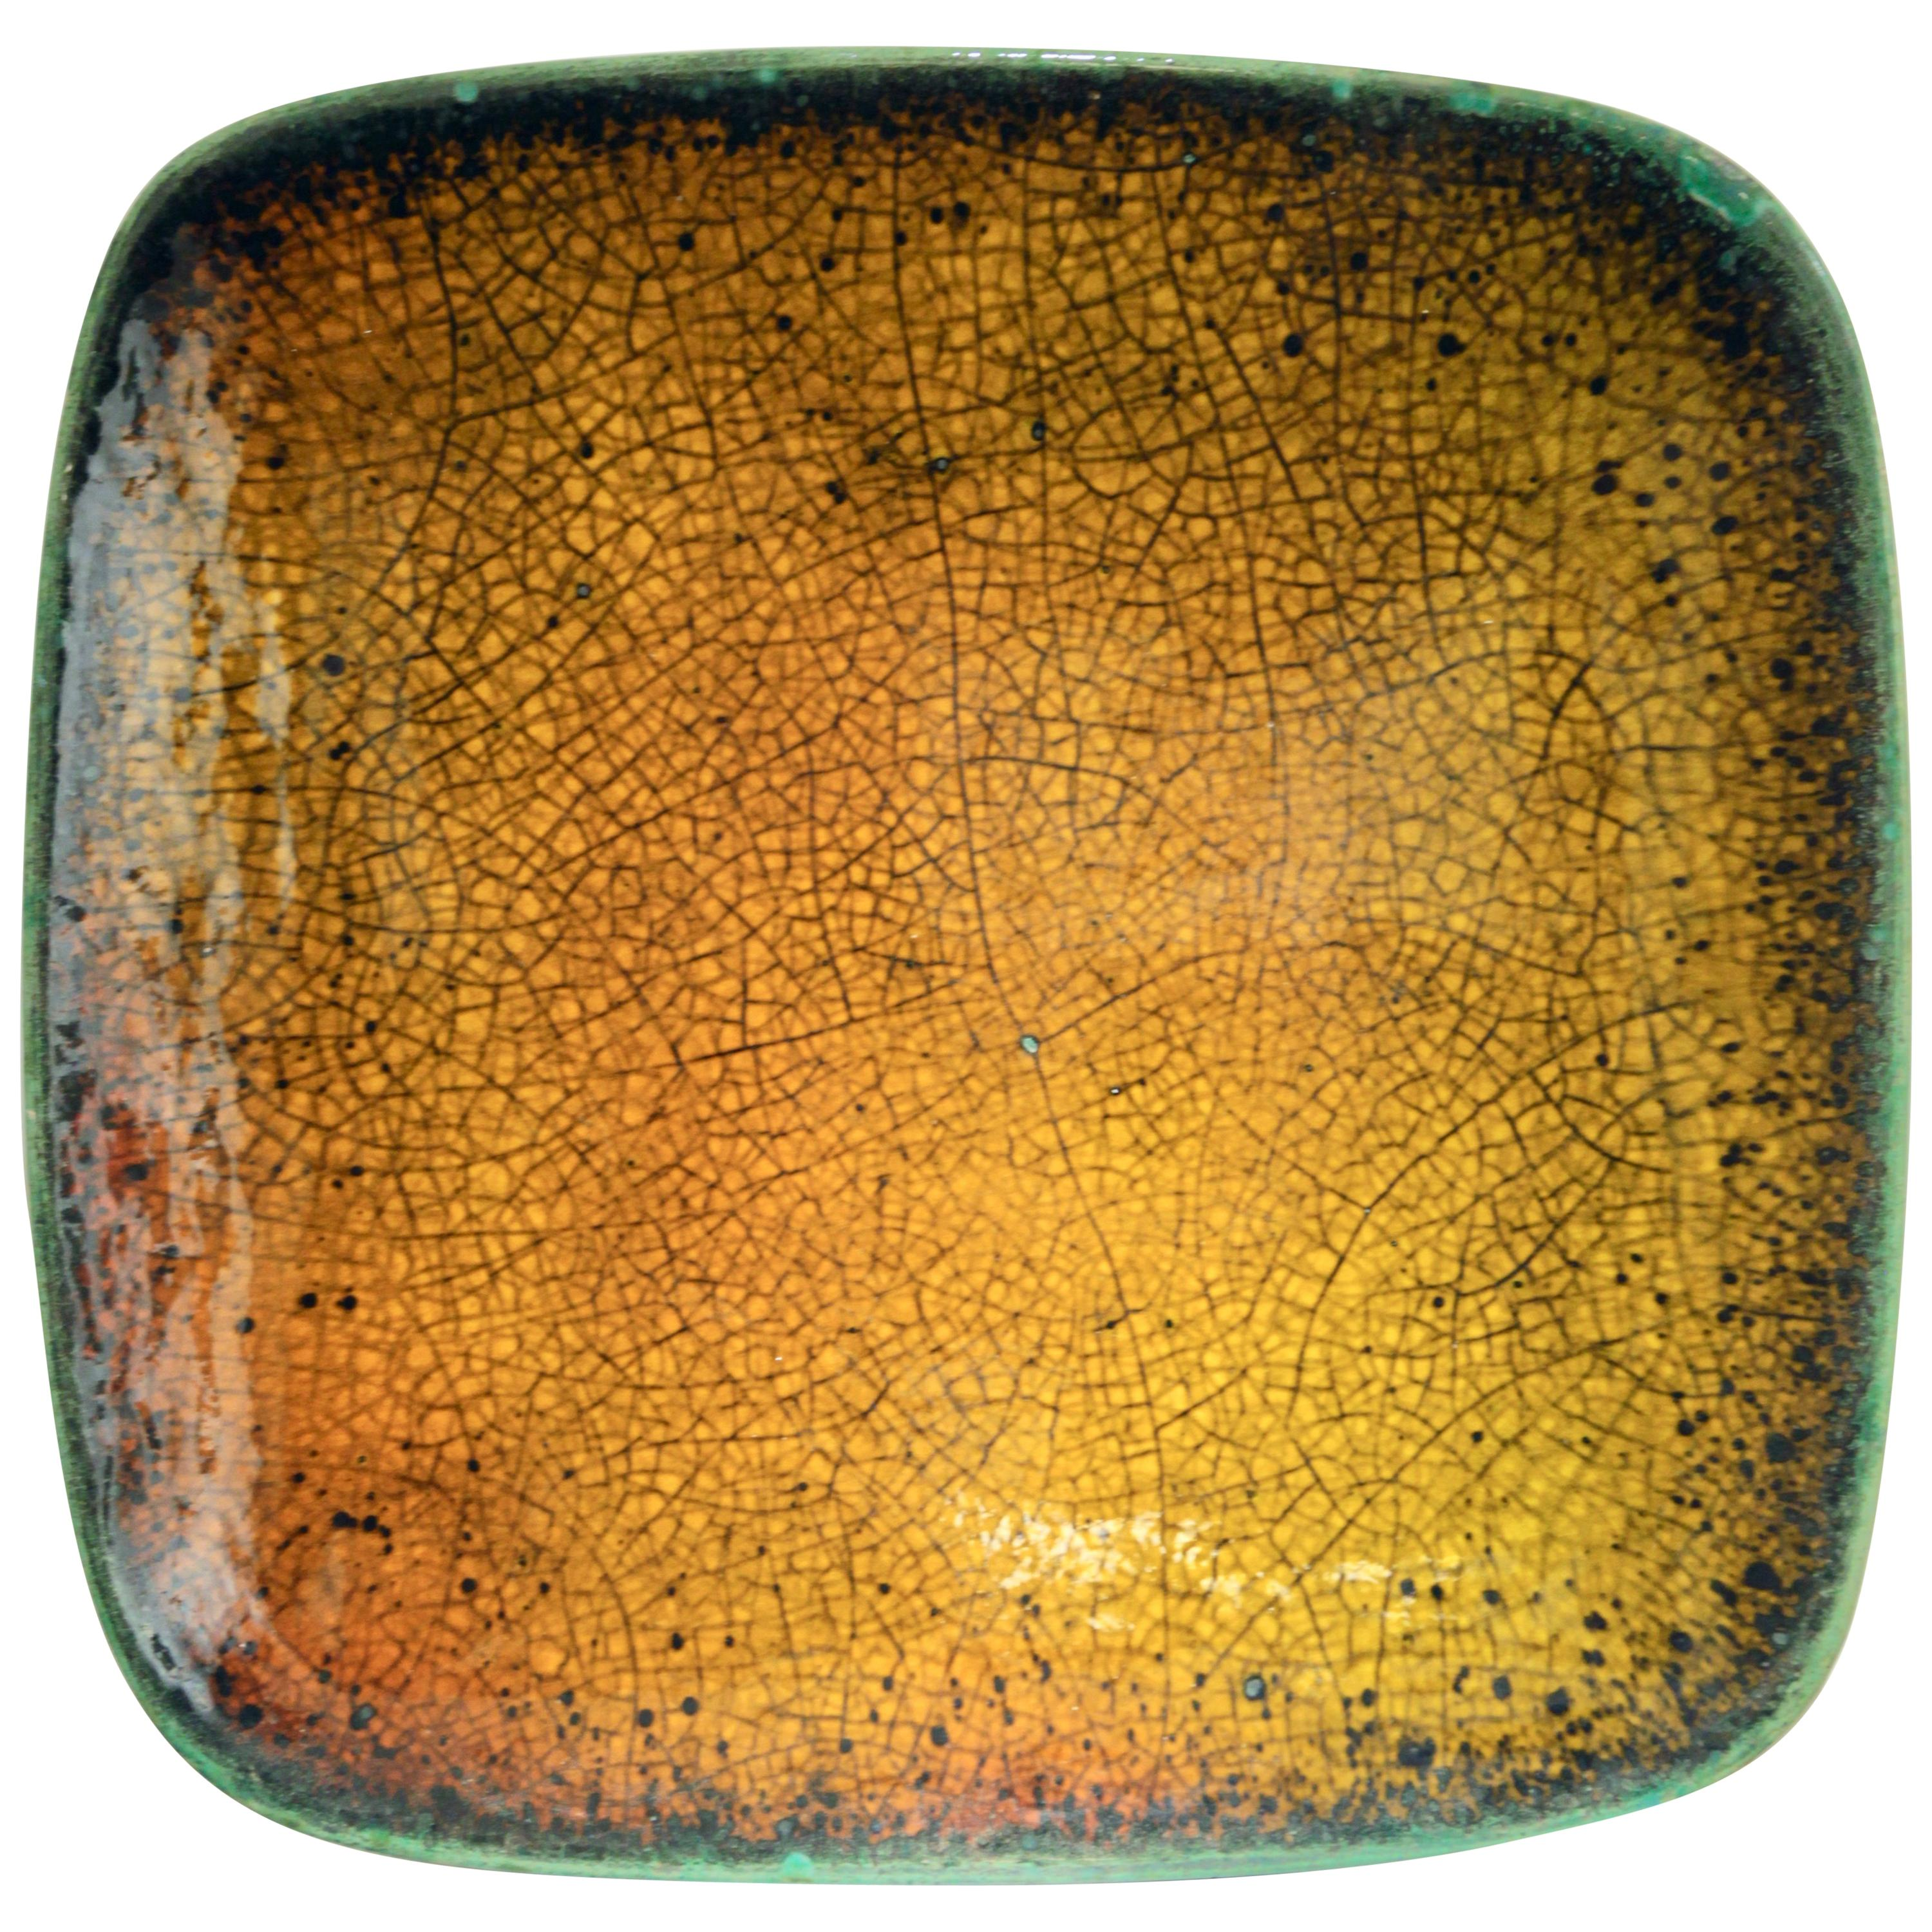 Hans Hedberg, a Large Unique Faïence Plate, Biot, France, 1960s